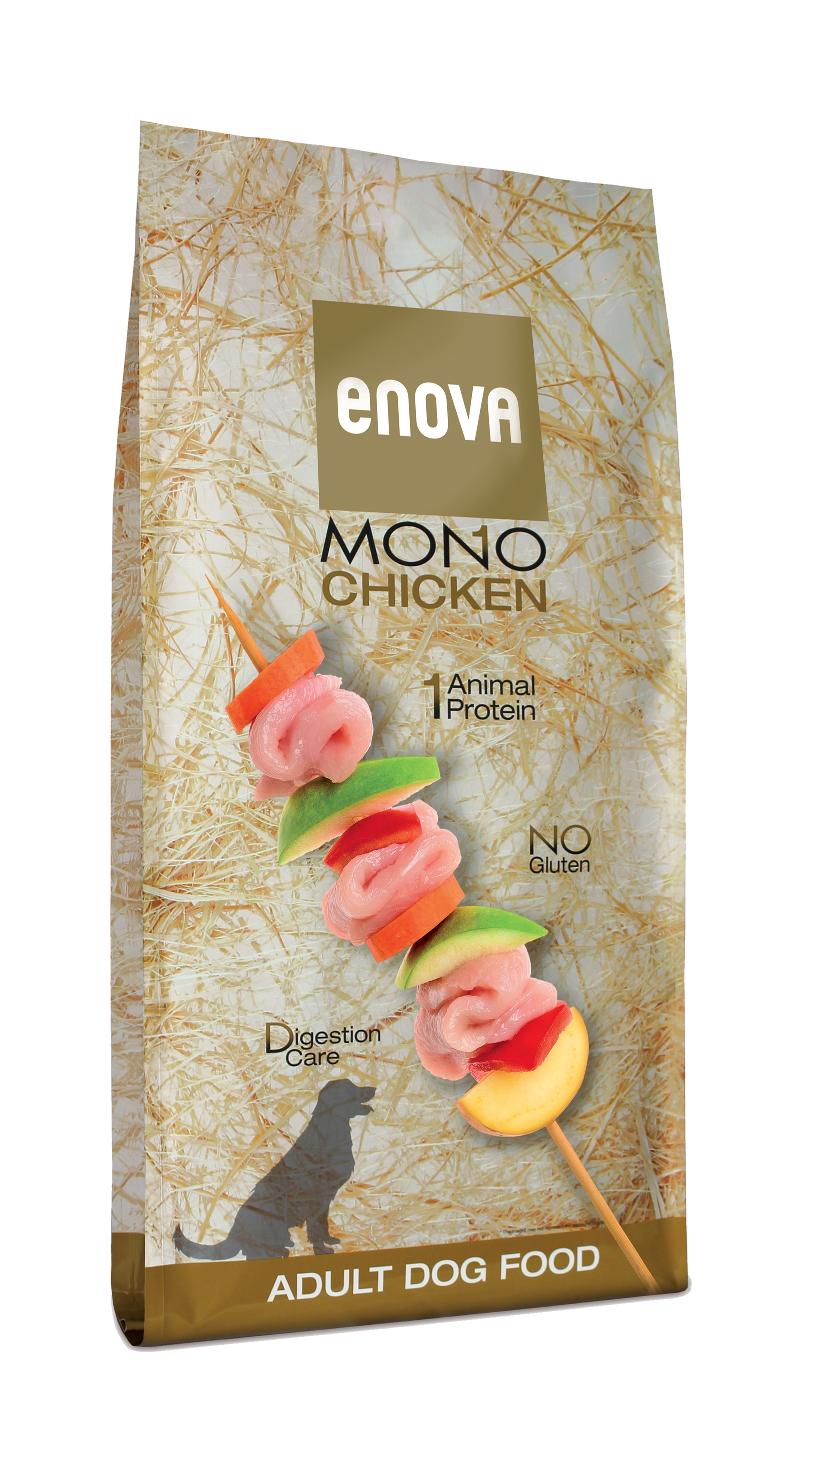 enova-mono-chicken